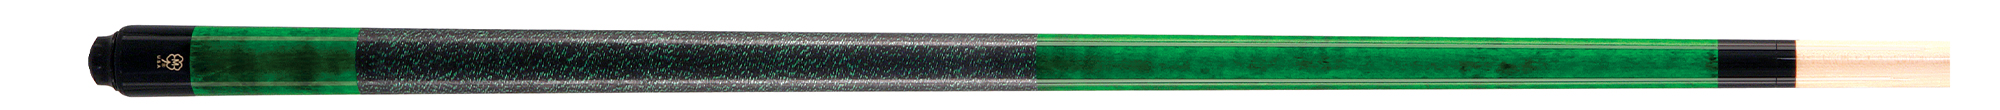 PK3059: McDermott GS05 Emerald Green pool #1